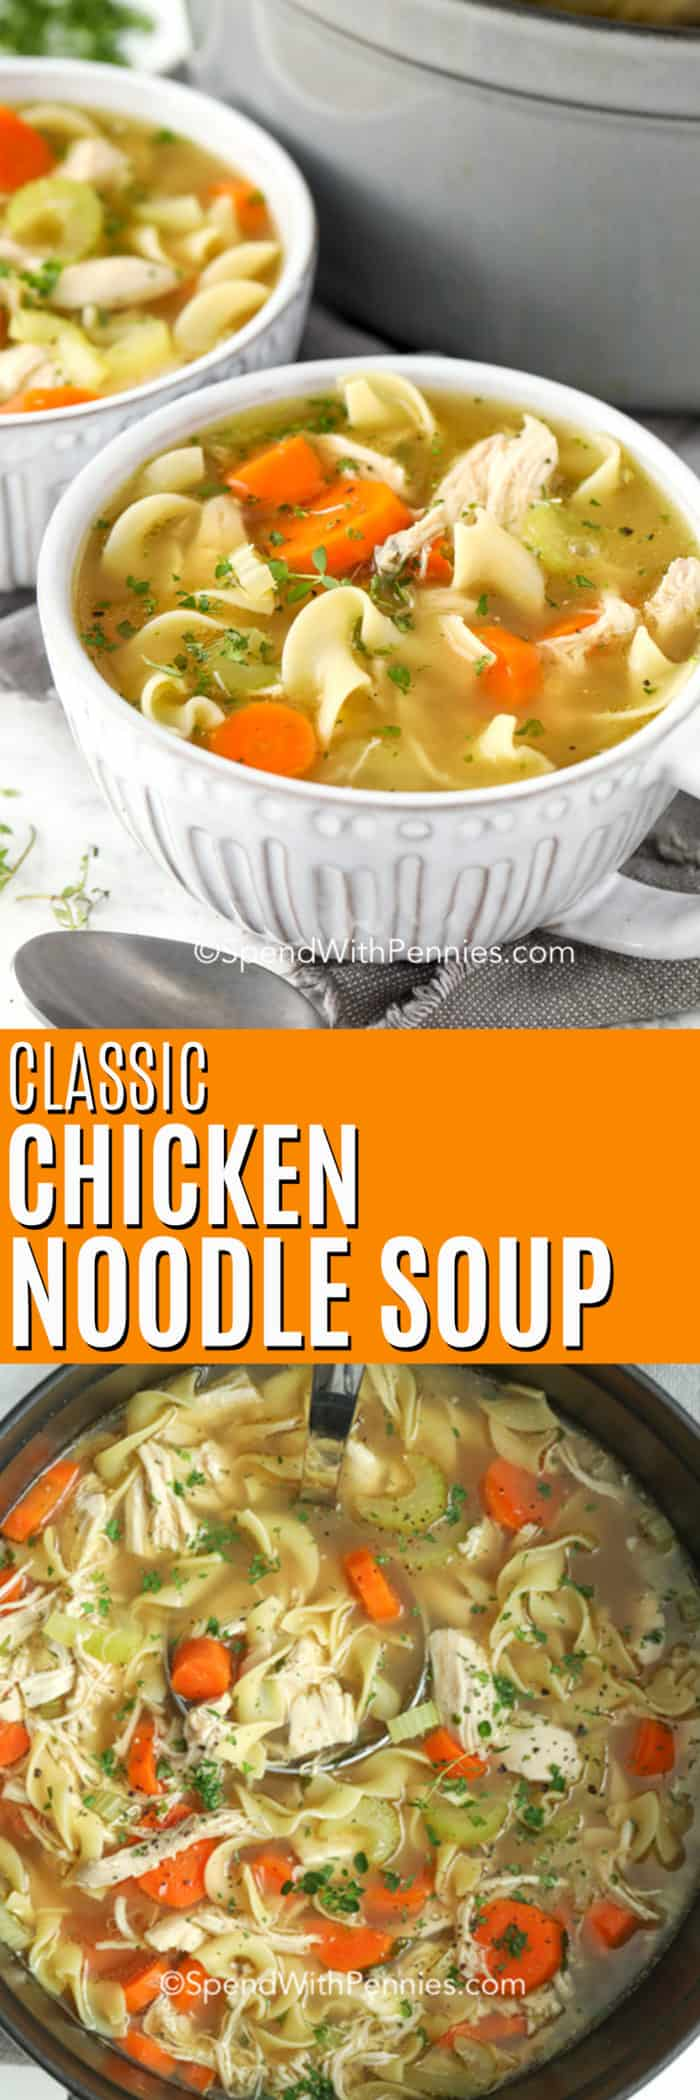 Top image - a bowl of chicken noodle soup. Bottom image - overview of a stock pot of chicken noodle soup.